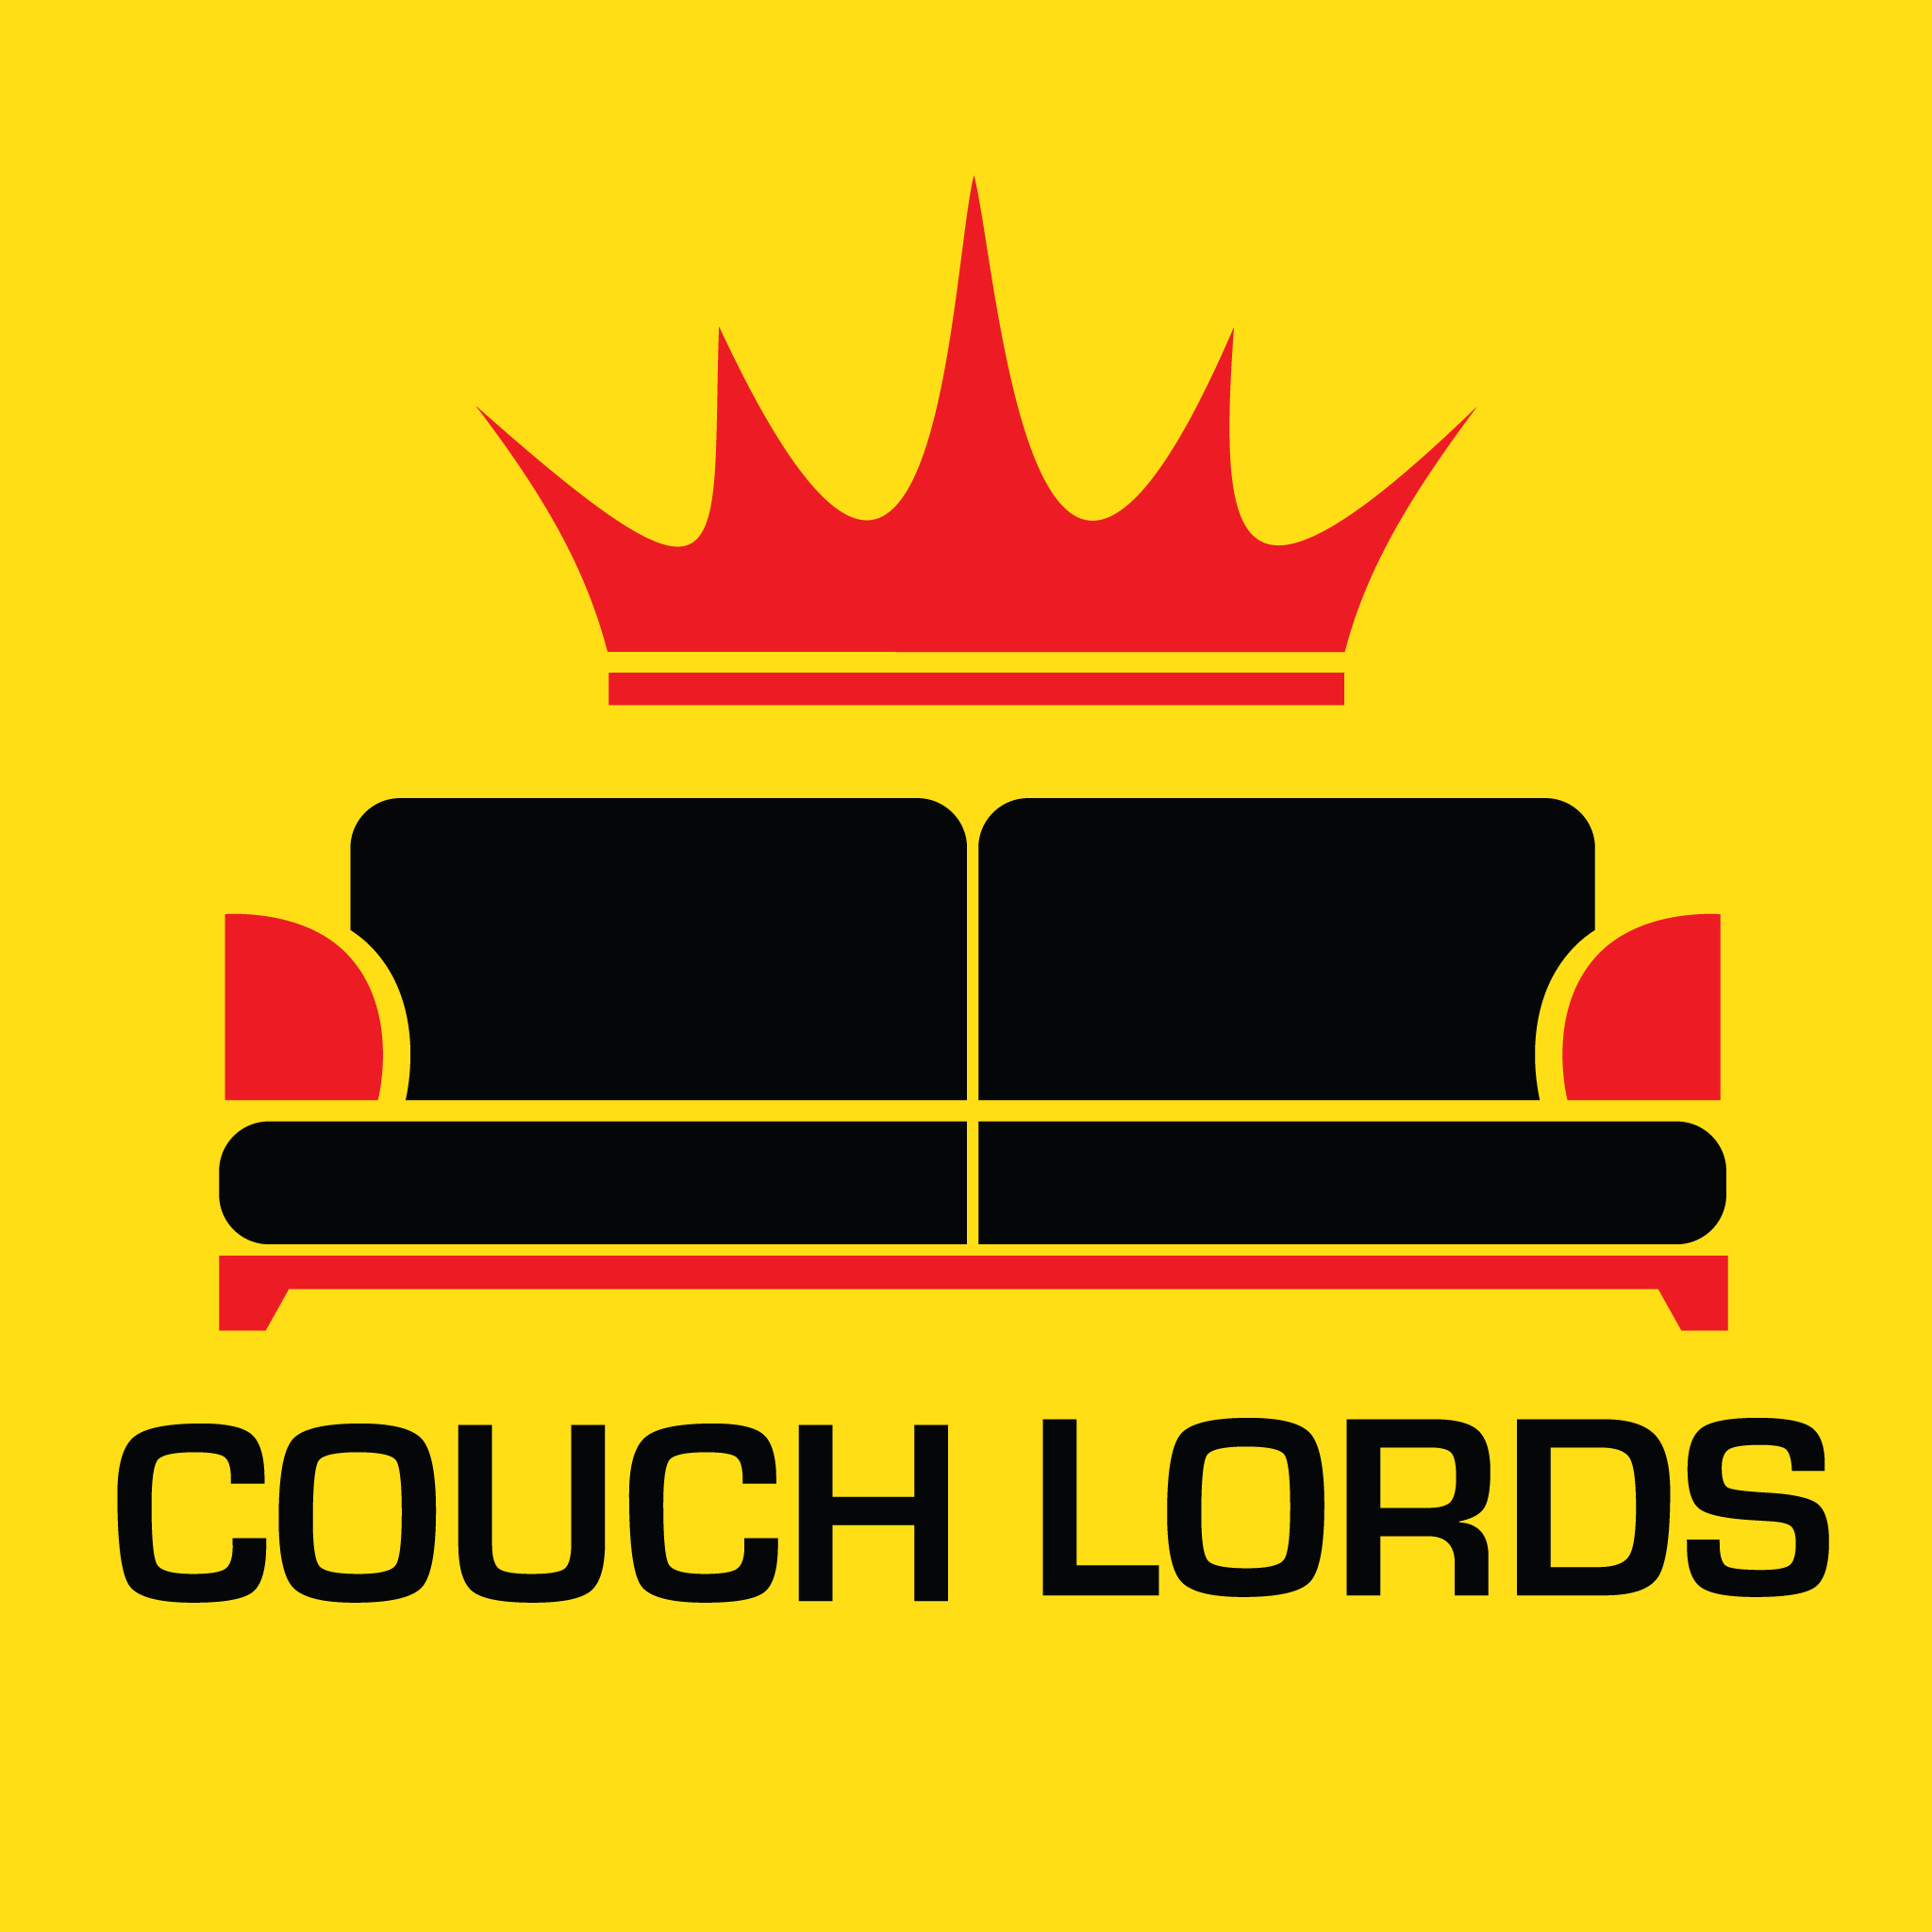 Couch Lords